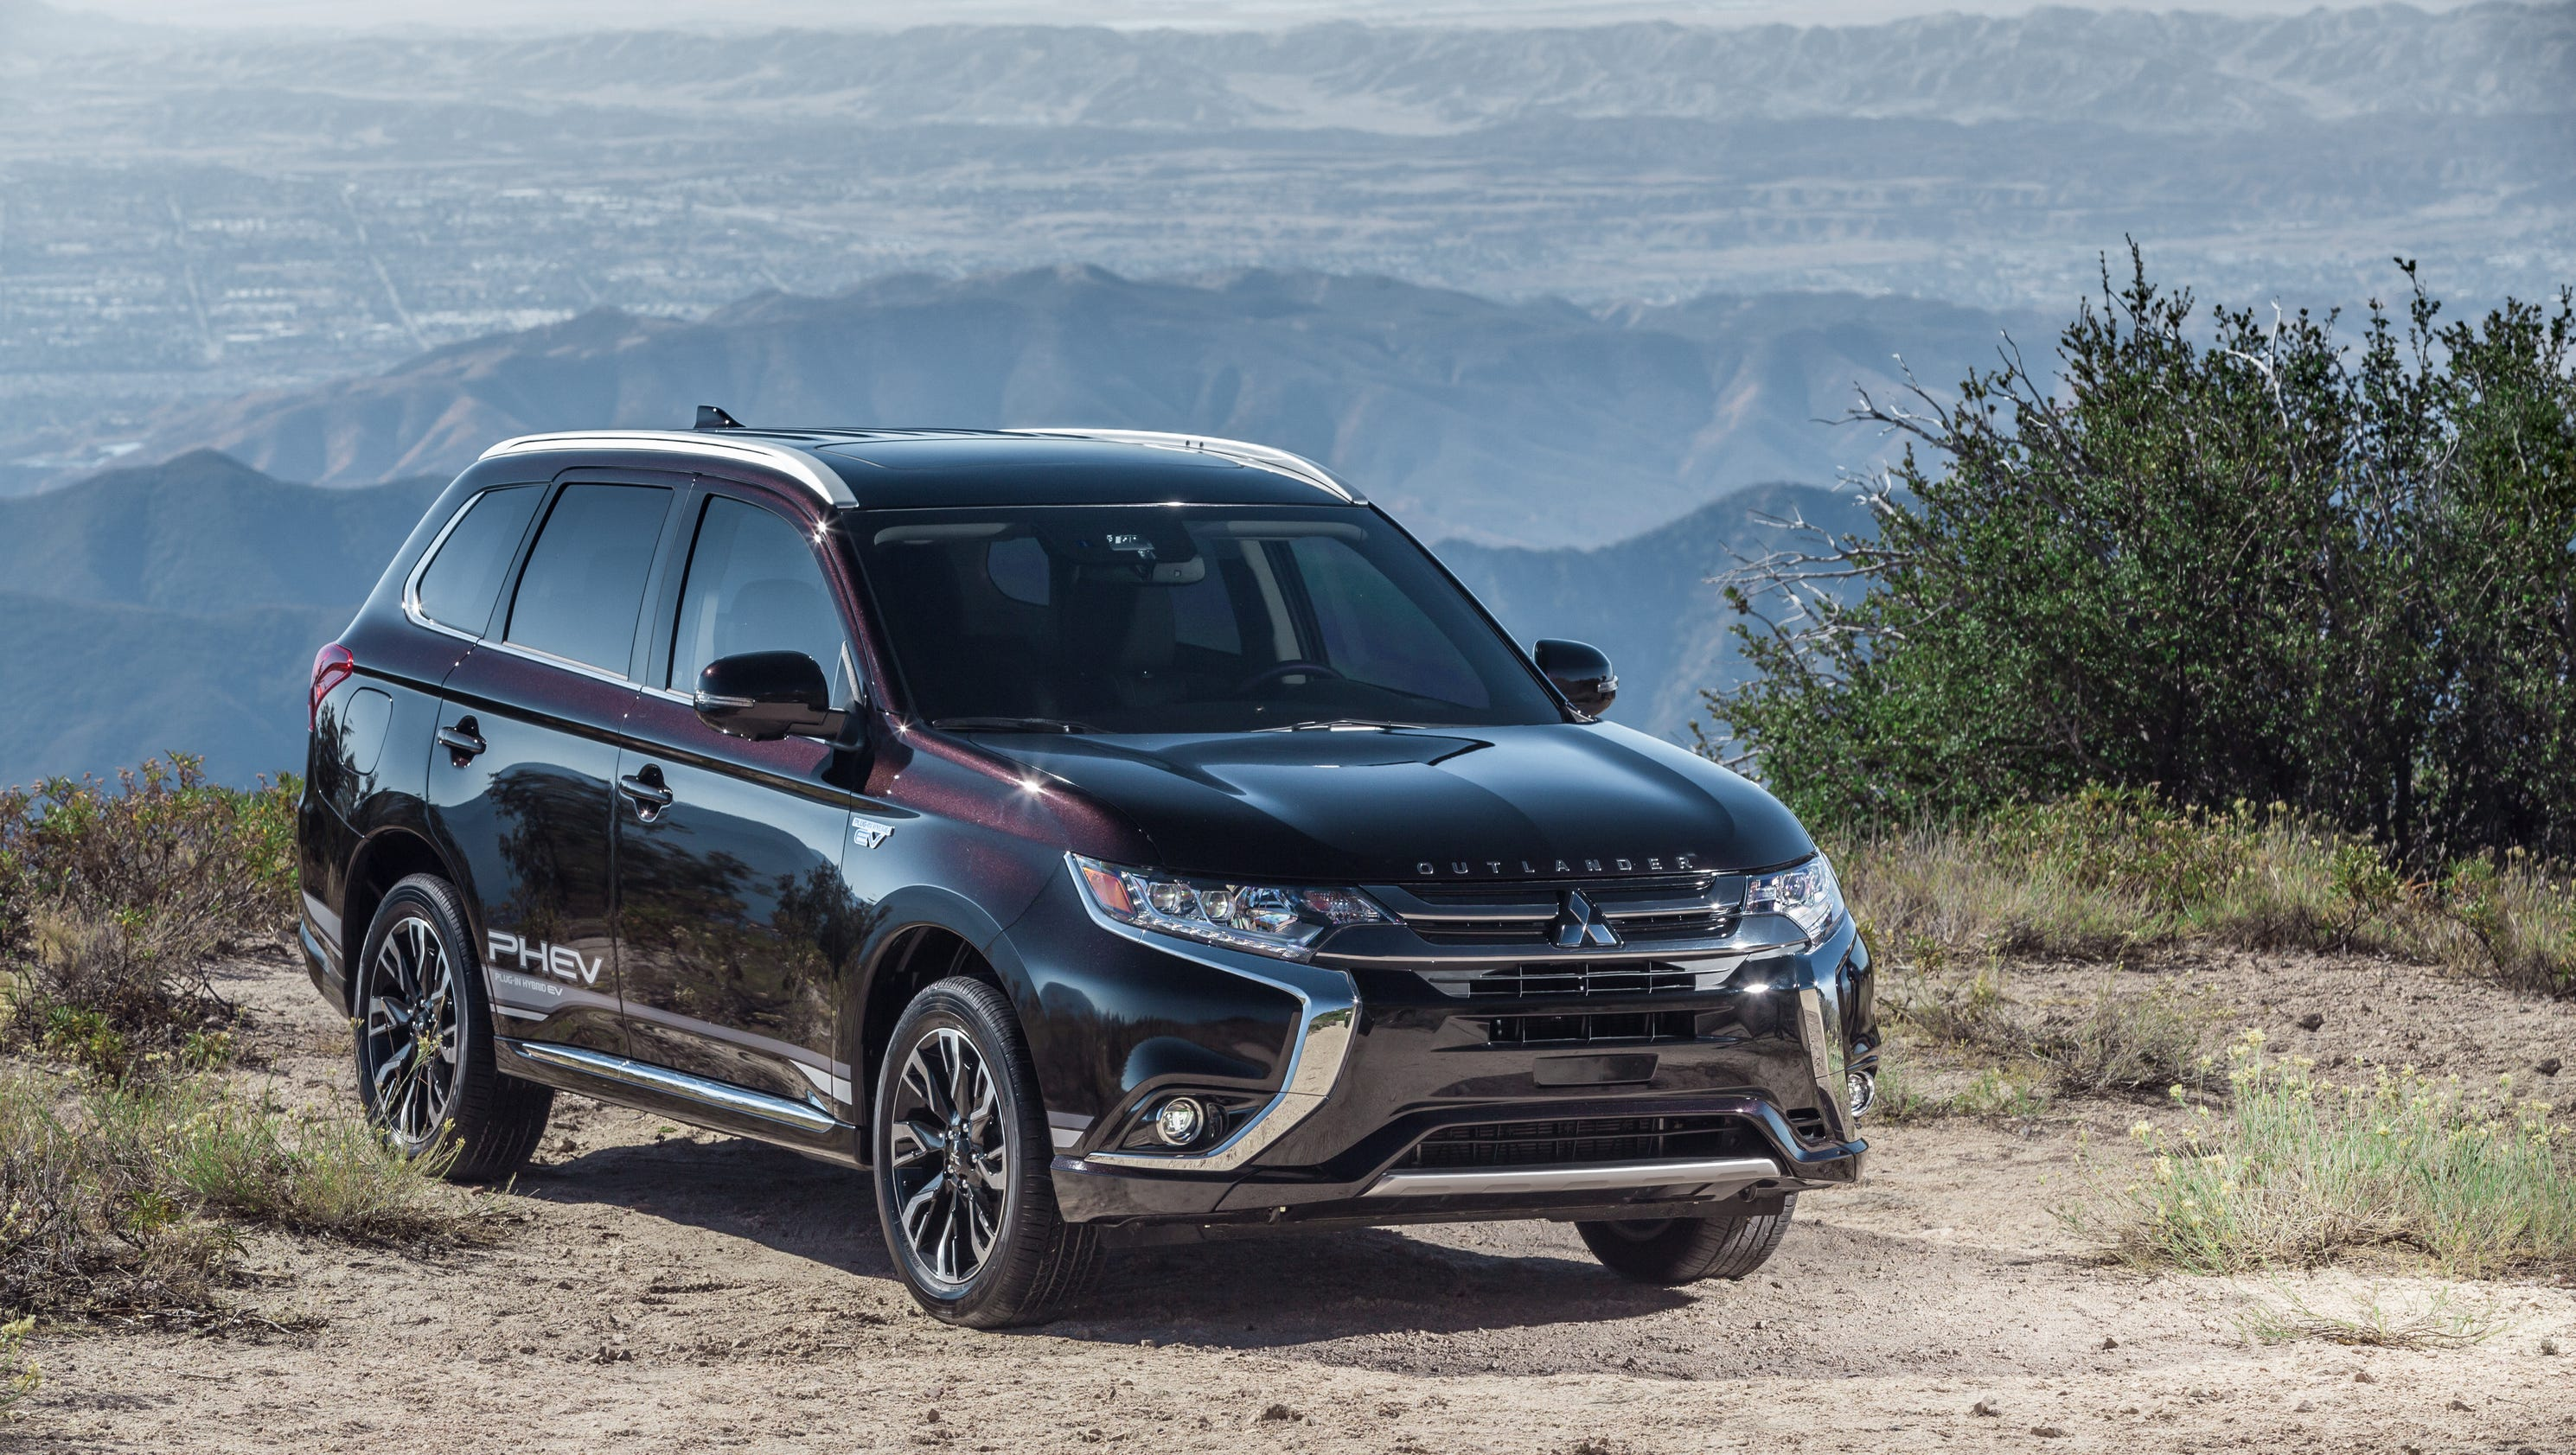 outlander yong benjamin profile epoch of side crossover times the view mitsubishi phev